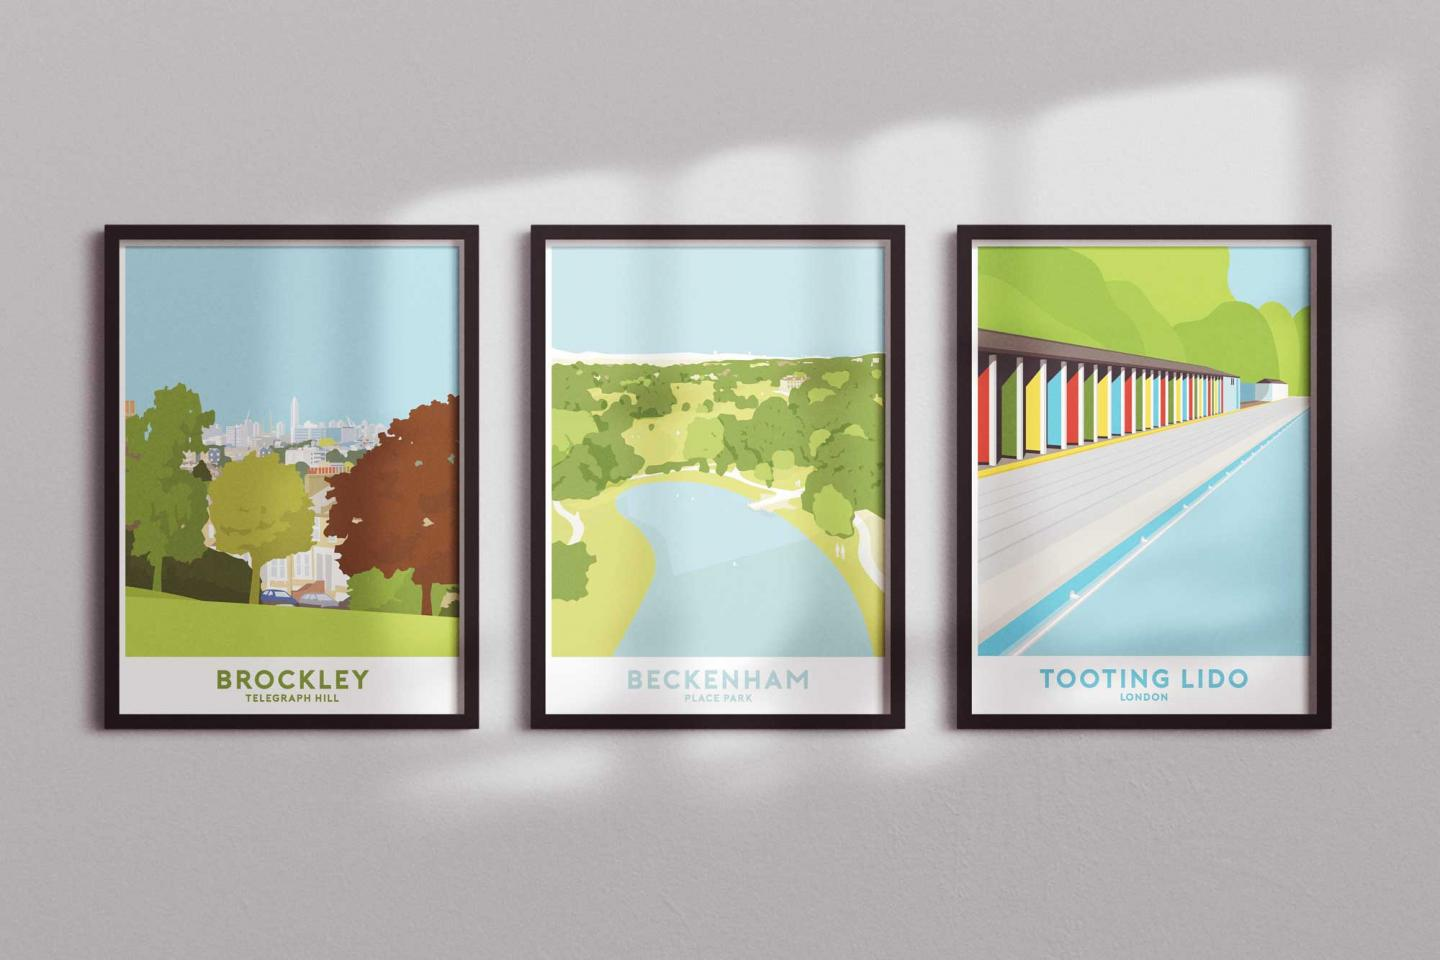 Place in Print 3 for 2 Travel Posters Promotion